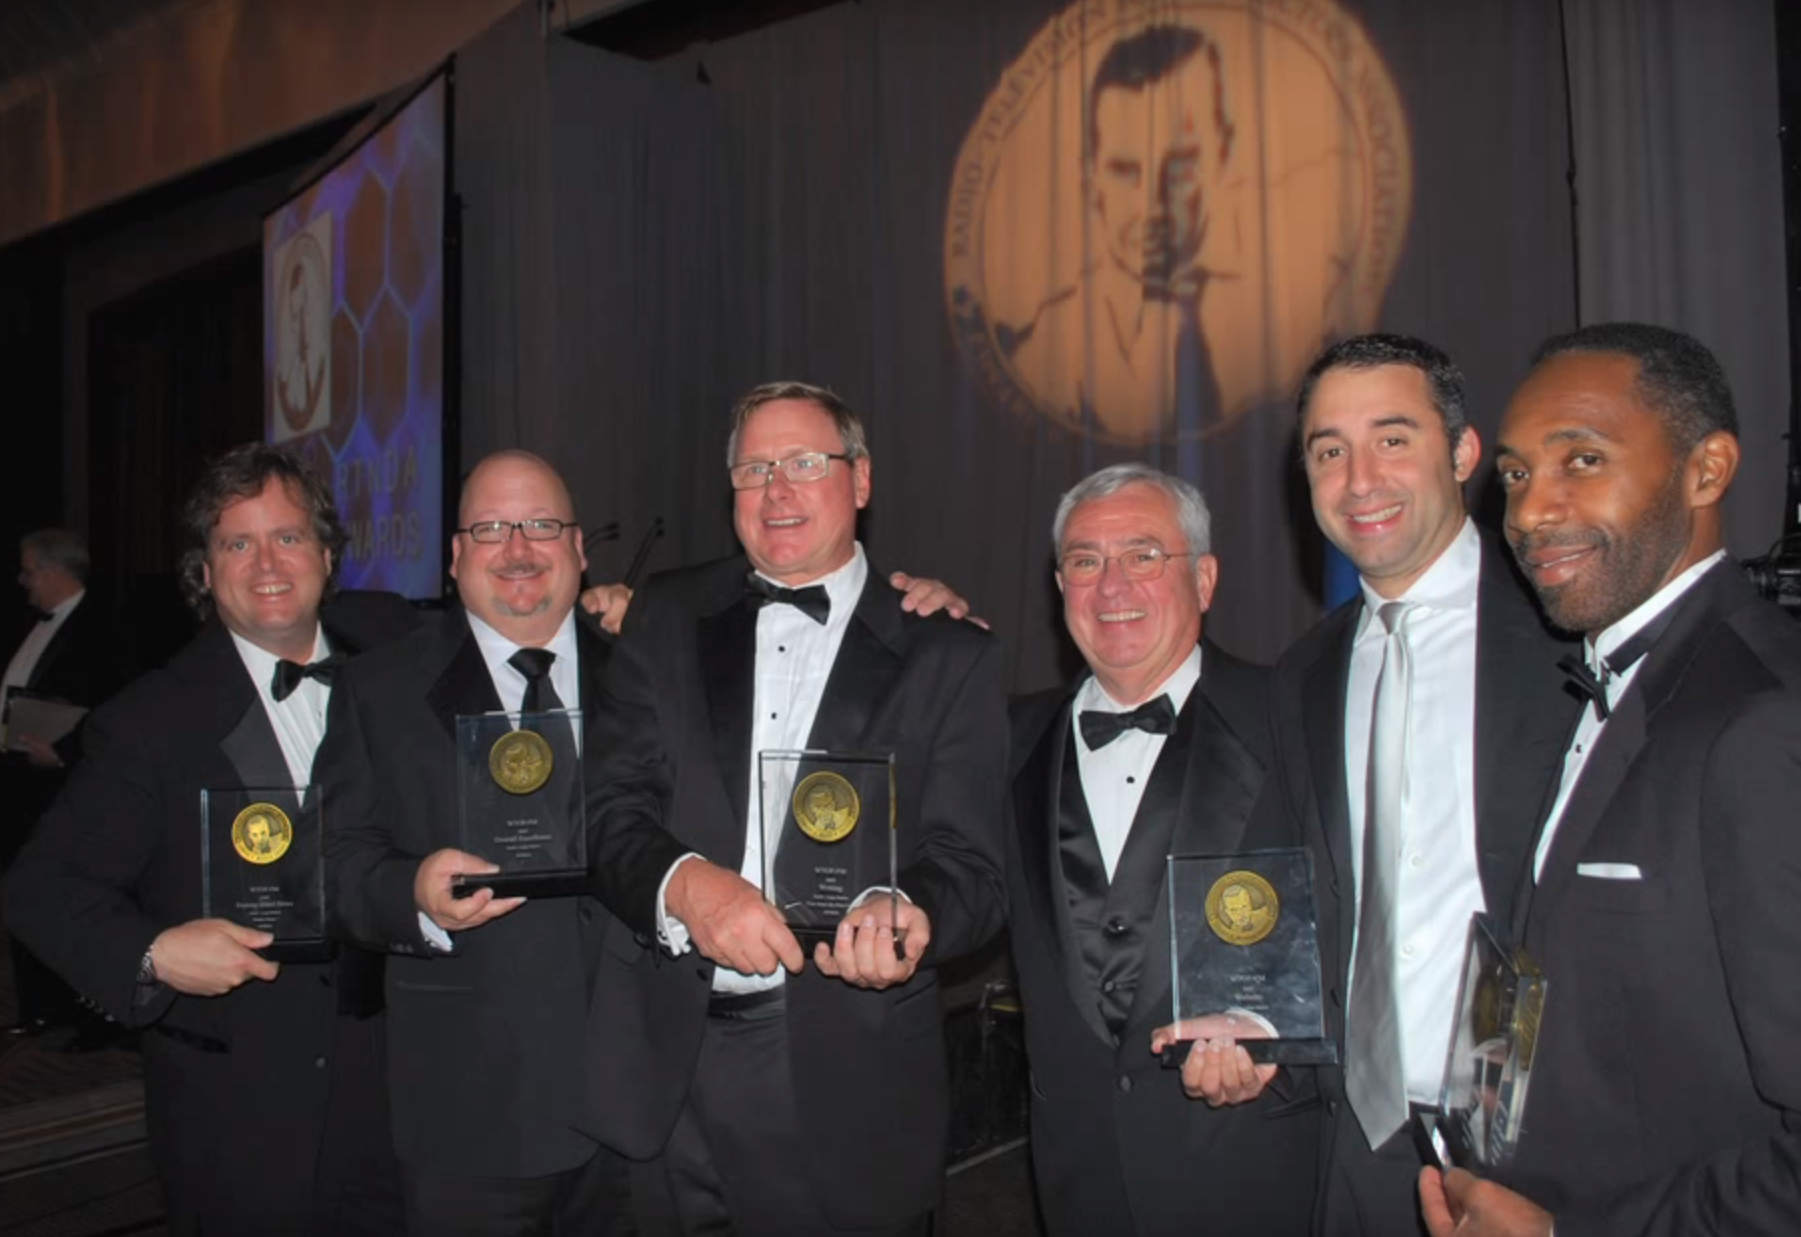 WTOP celebrated six national Murrow Award victories in ___. From left: Brennan Haselton, current Director of News/Programming Mike McMearty, commentator Chris Core, then-director of news/programming Jim Farley, ______ and national security correspondent J.J. Green. (File photo)